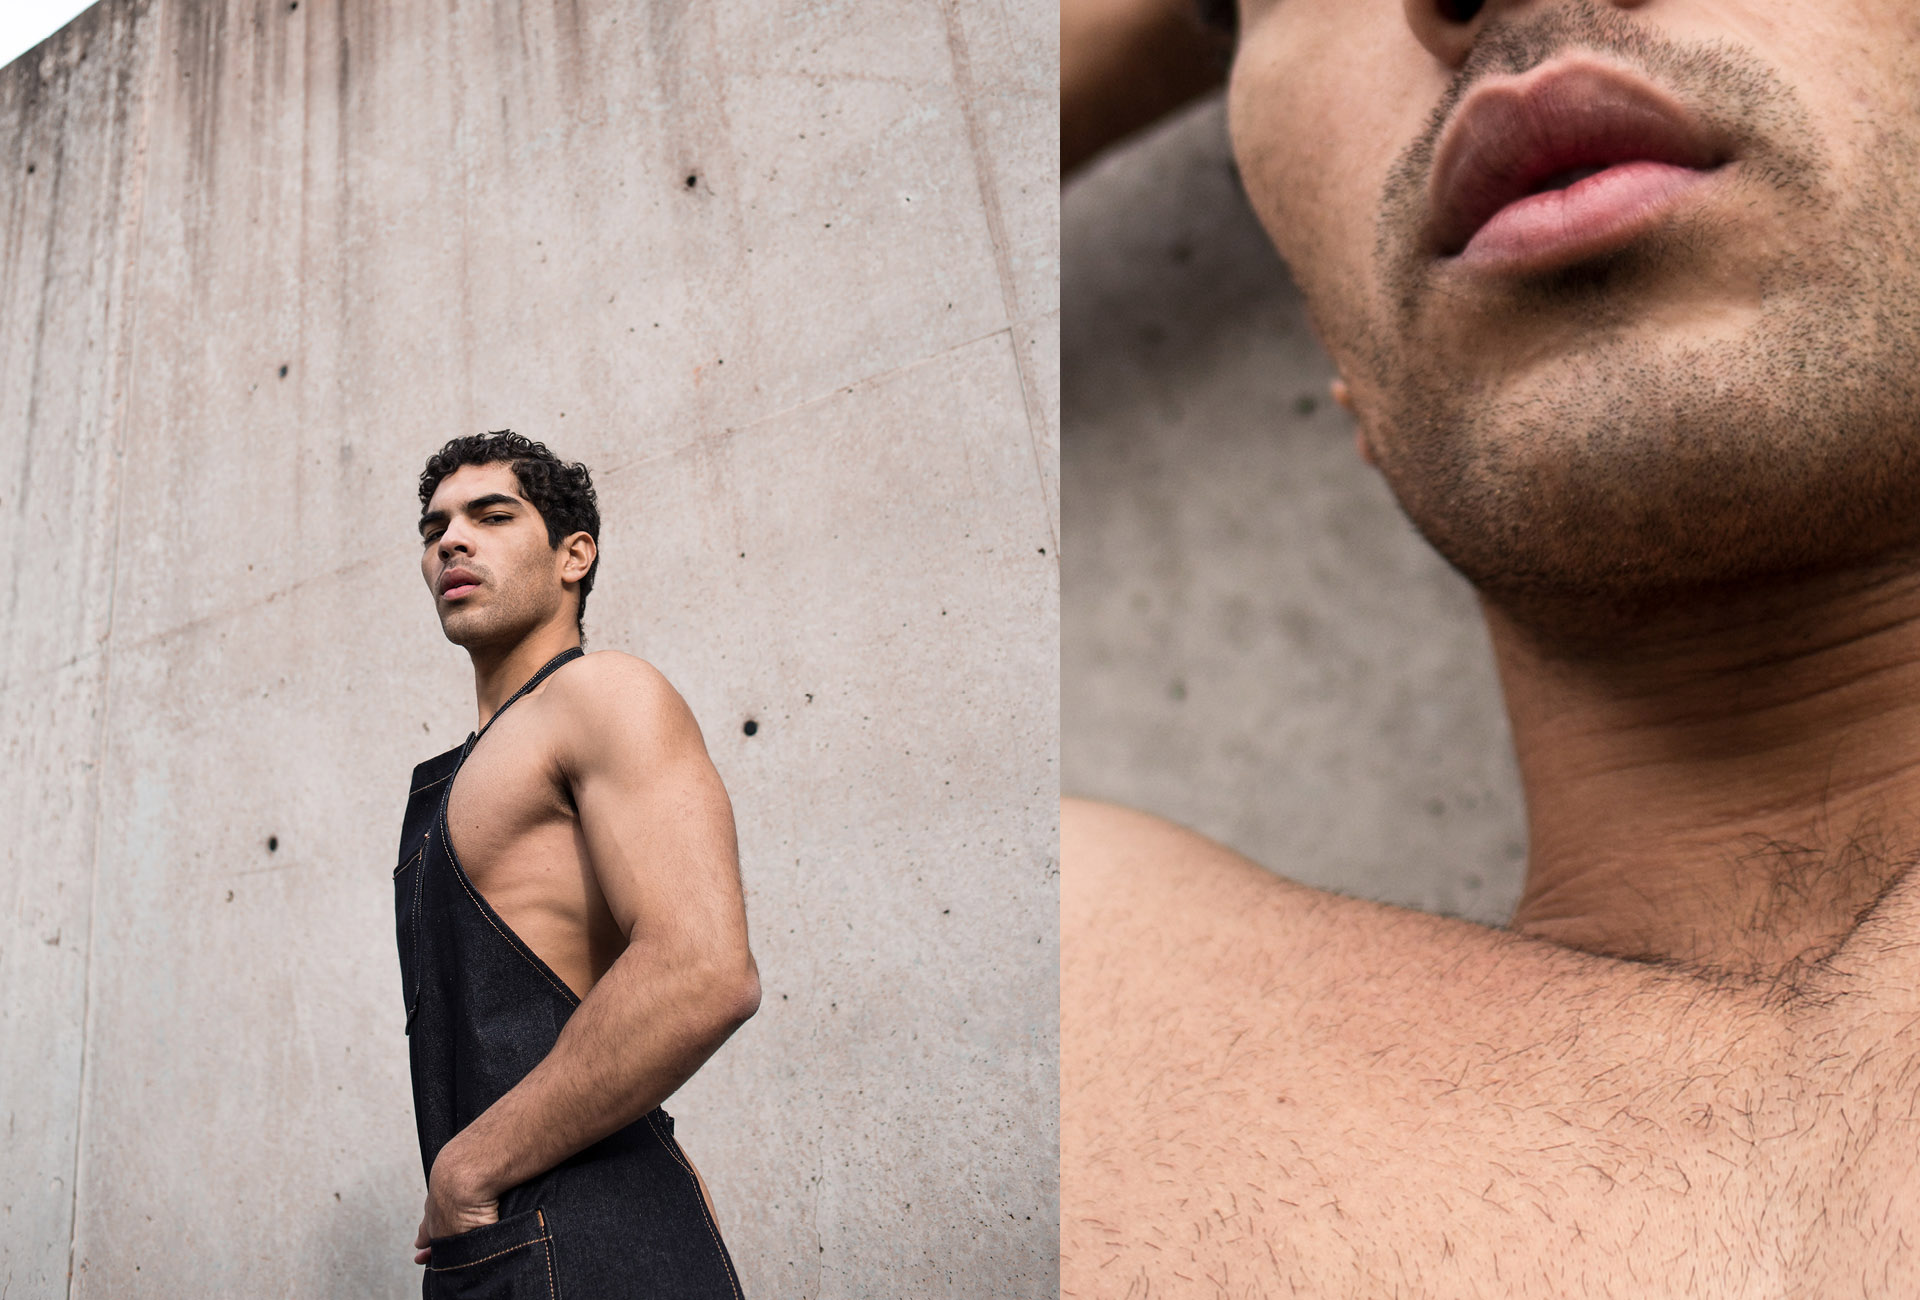 PS1 Playground, MoMa PS1, Darwin Stapel, Photographer, Styling, Berlin, Male Editorial, Publication, Kaltblut Magazine, Nelson Garcia, Hunk, New York City